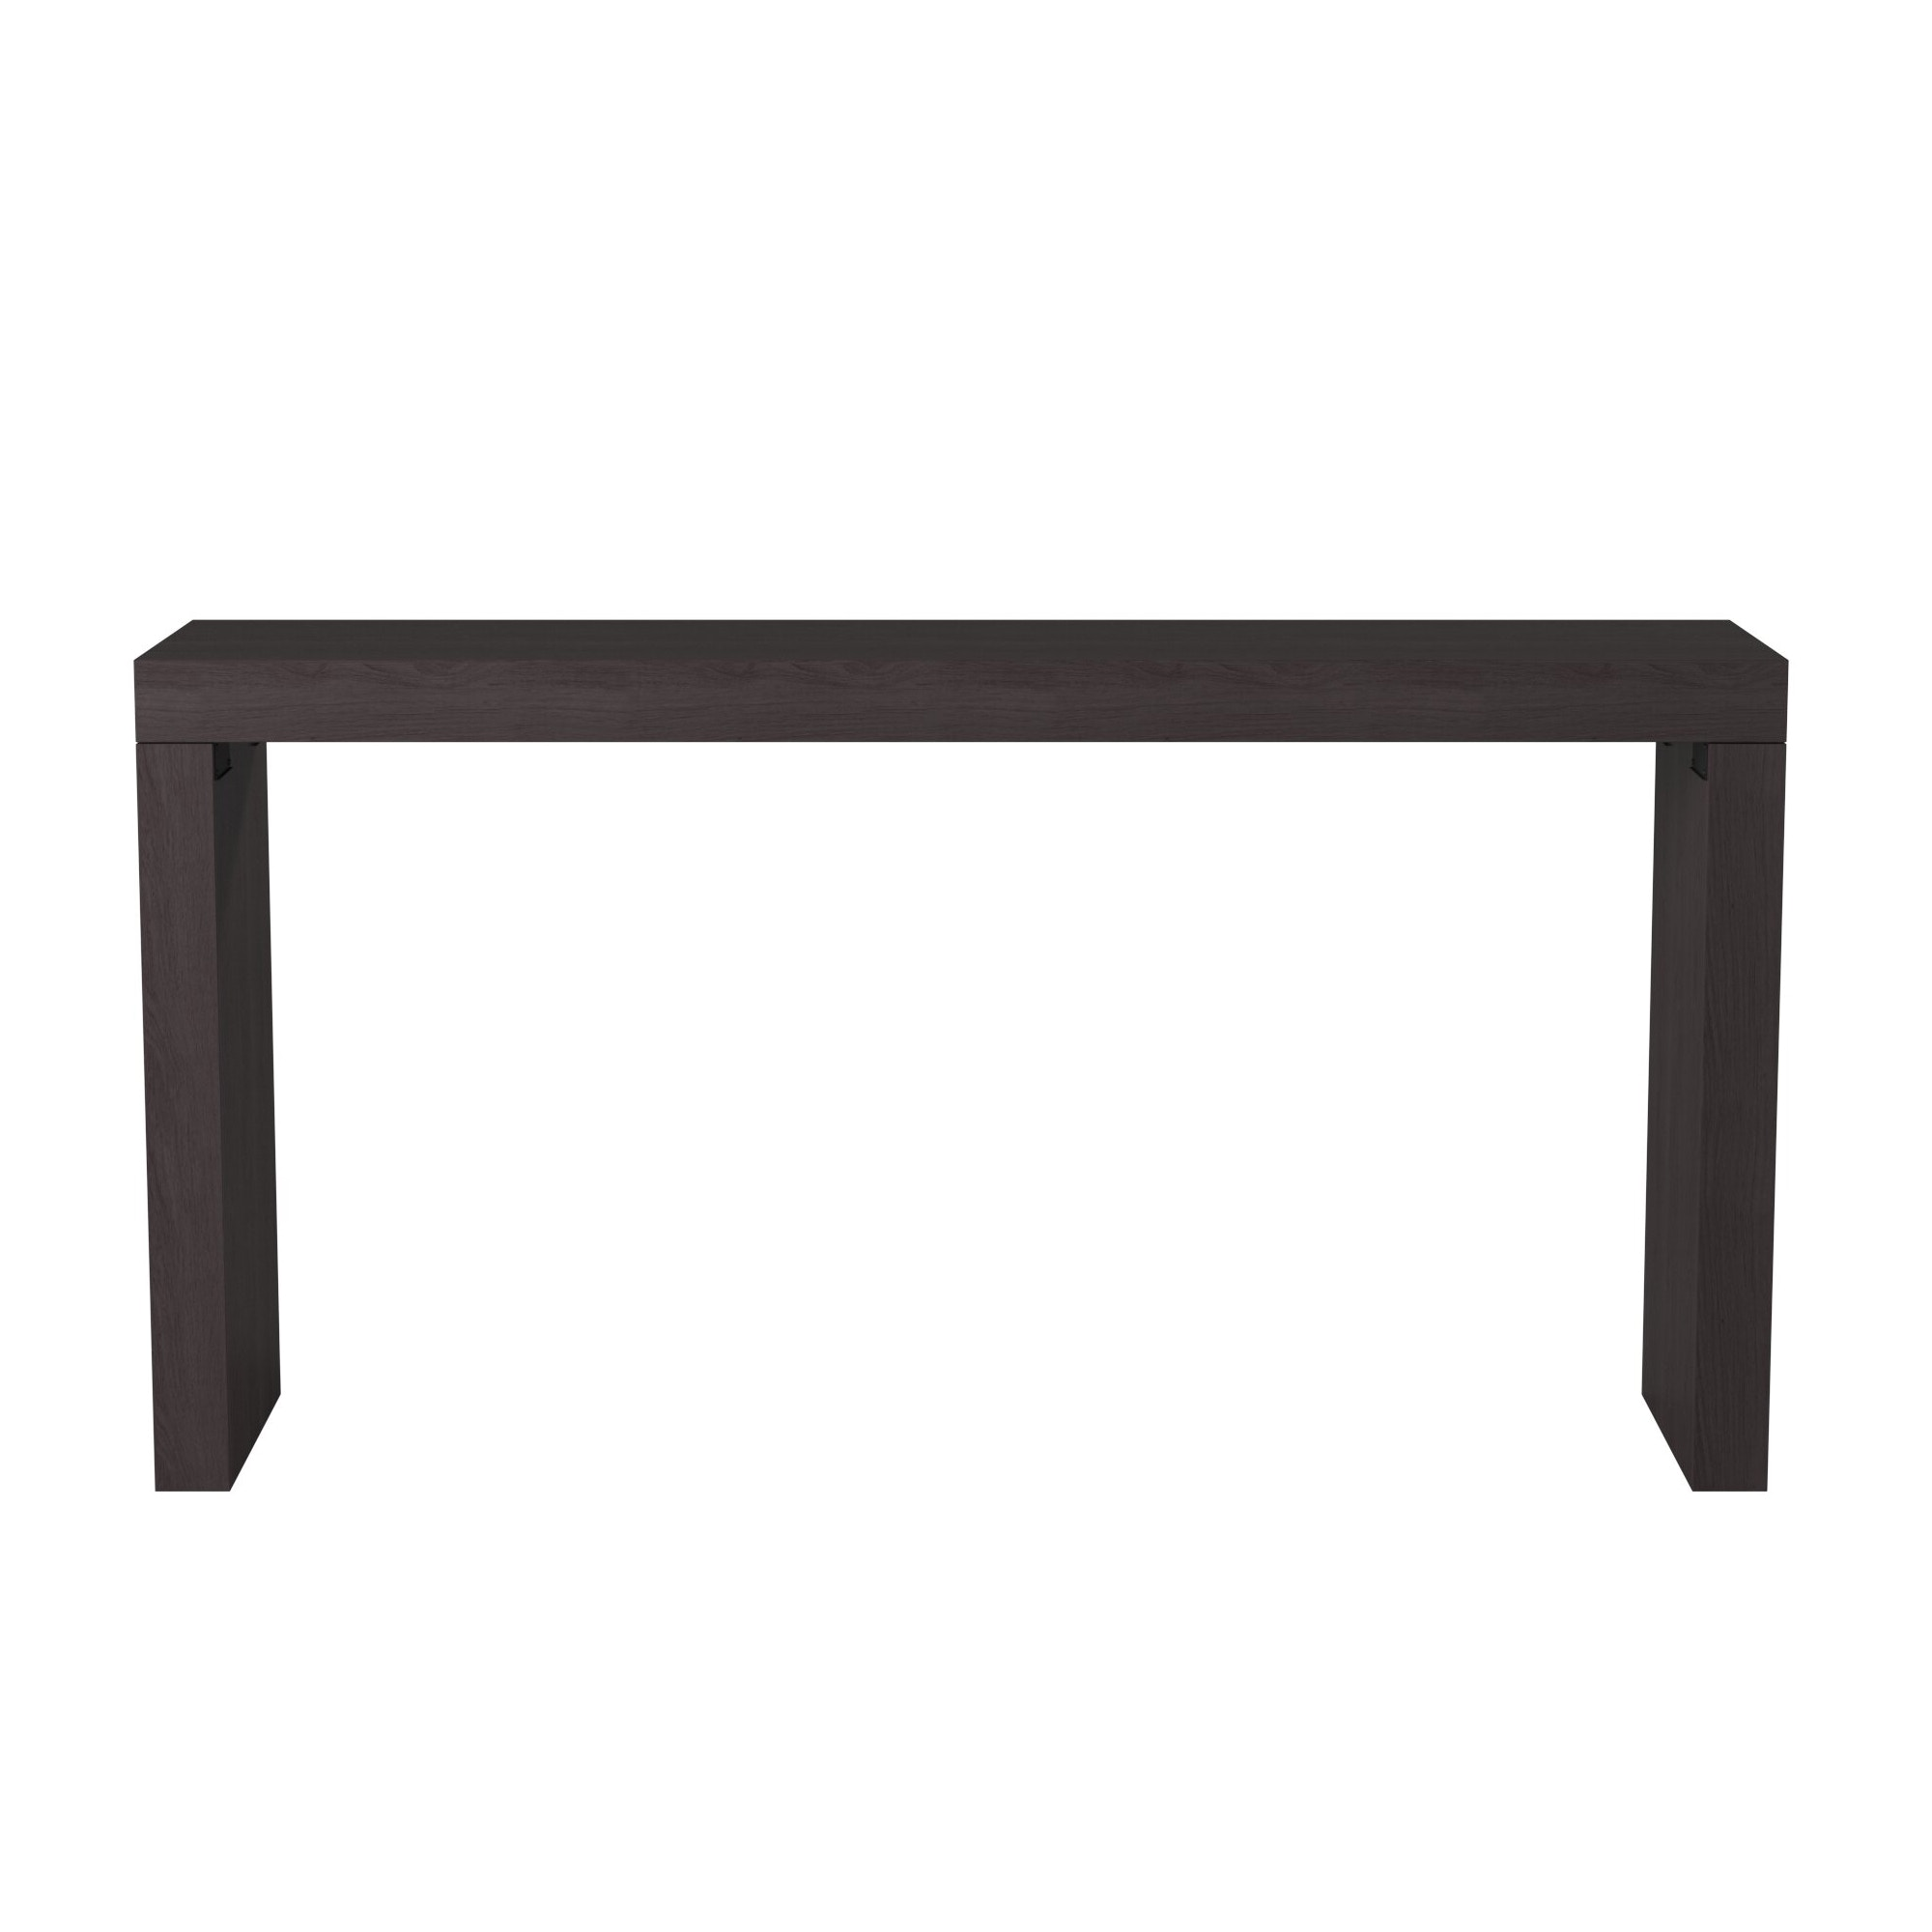 Howard Elliott Jennifer Black Wood Grain Veneer Console Table (KD  Construction) 37131